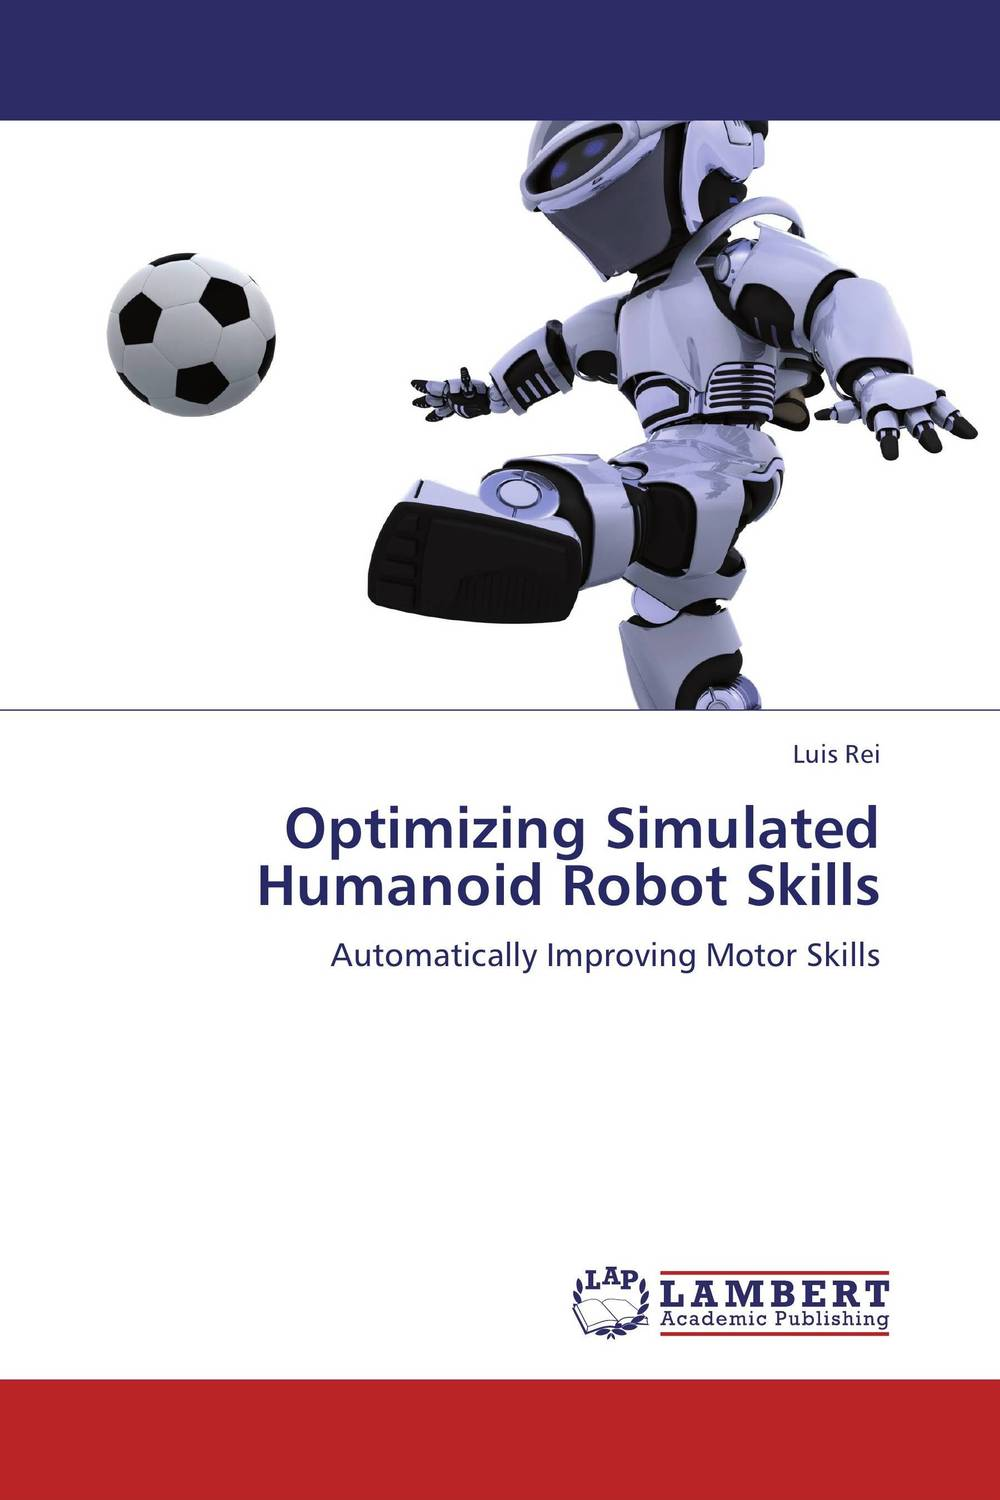 Optimizing Simulated Humanoid Robot Skills new 17 degrees of freedom humanoid biped robot teaching and research biped robot platform model no electronic control system